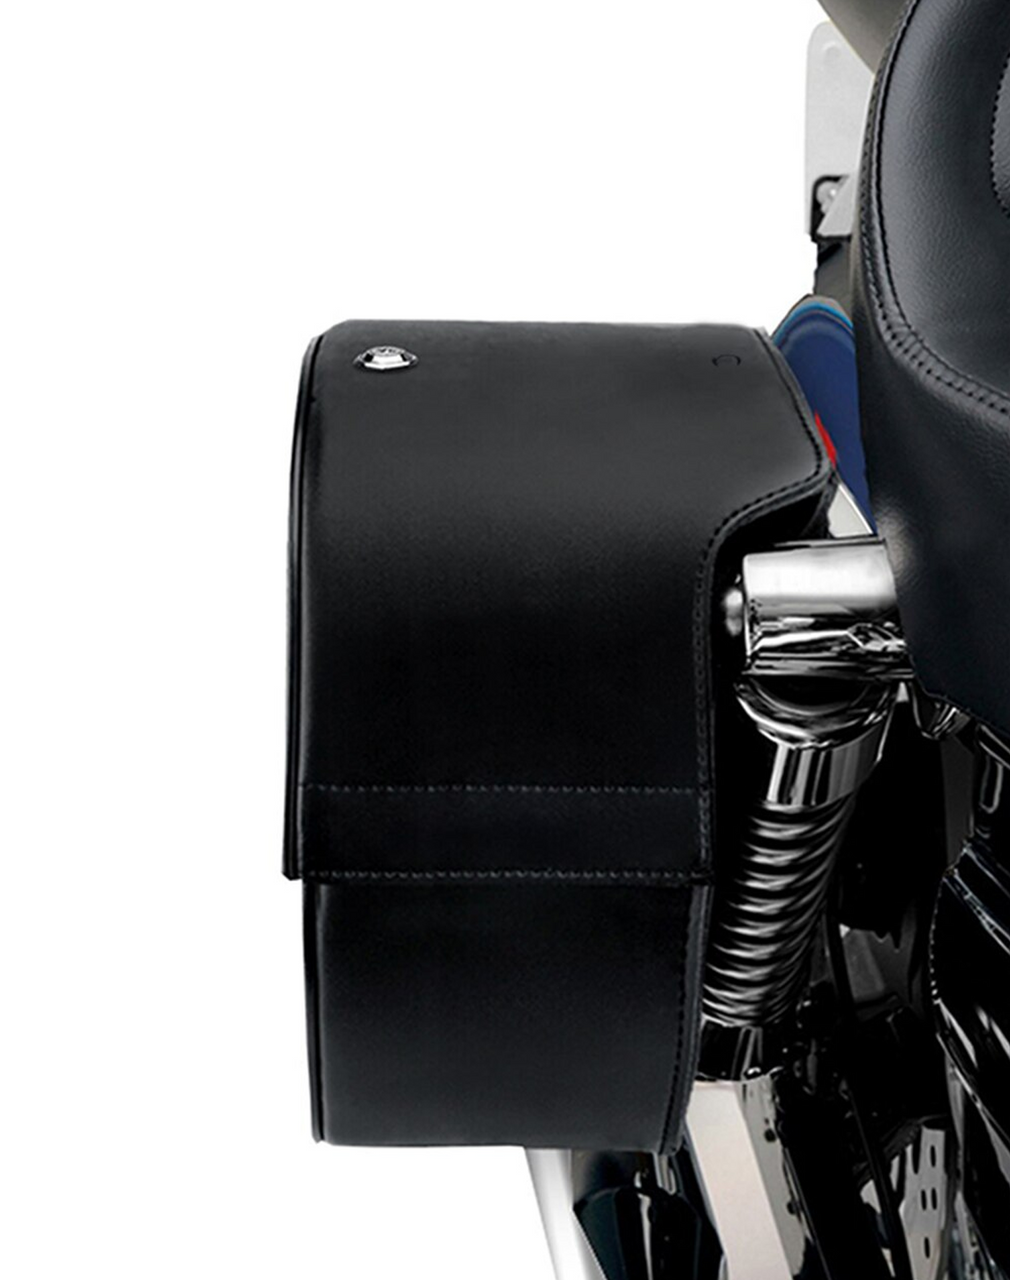 Viking Shock Cutout Slanted Studded Large Motorcycle Saddlebags For Harley Sportster Superlow Shock Cutout View